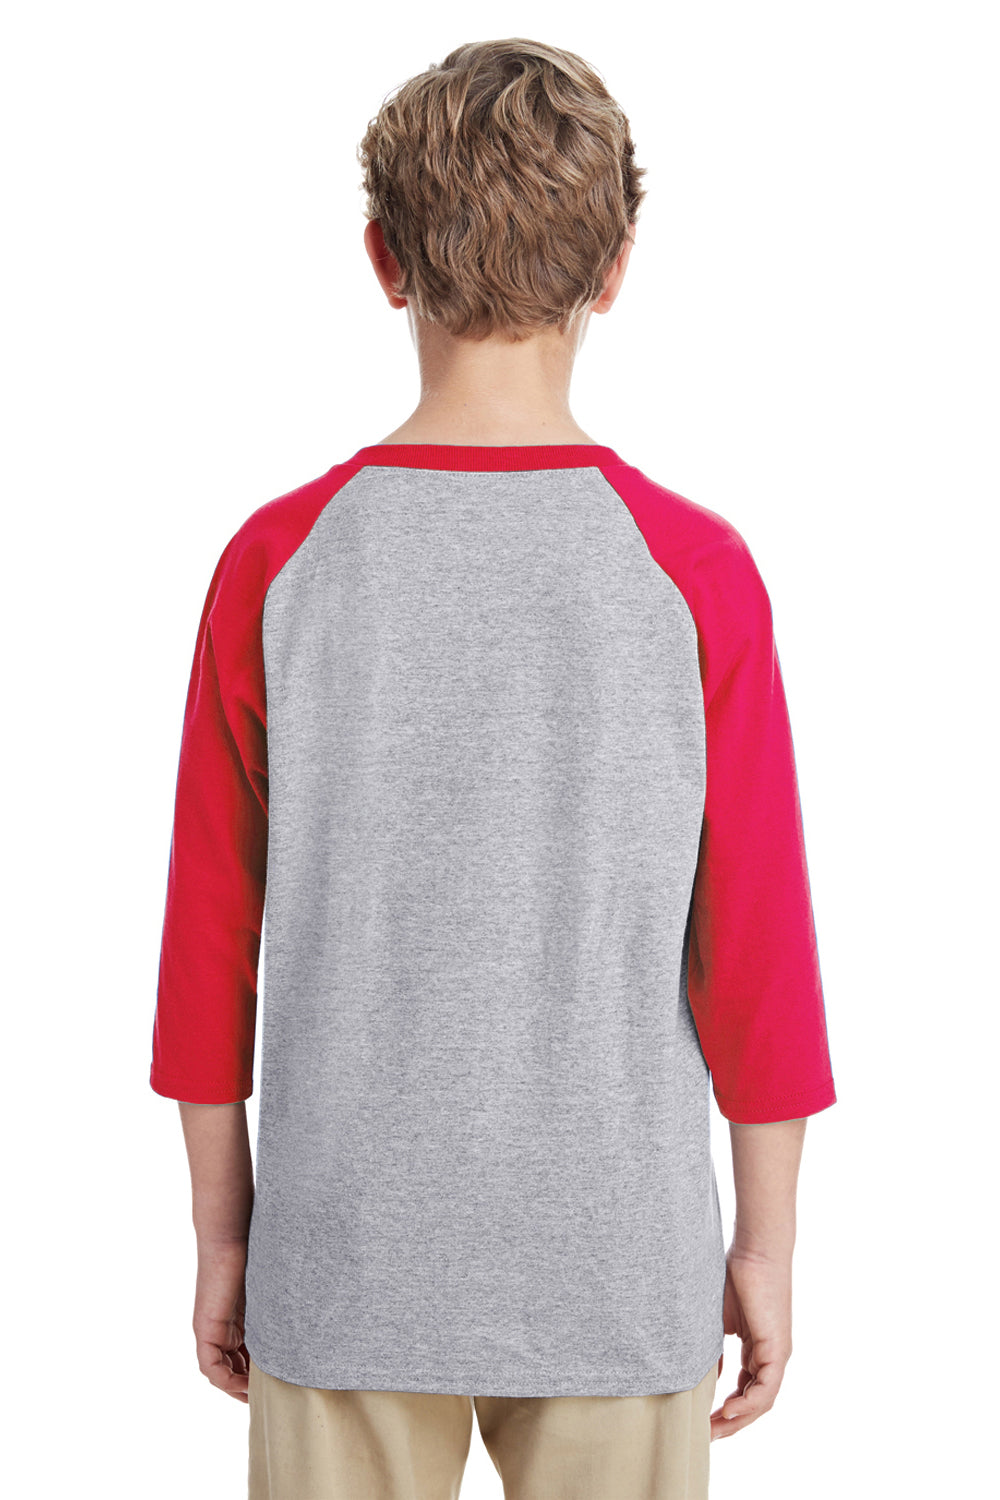 Gildan G570B Youth 3/4 Sleeve Crewneck T-Shirt Grey/Red Back